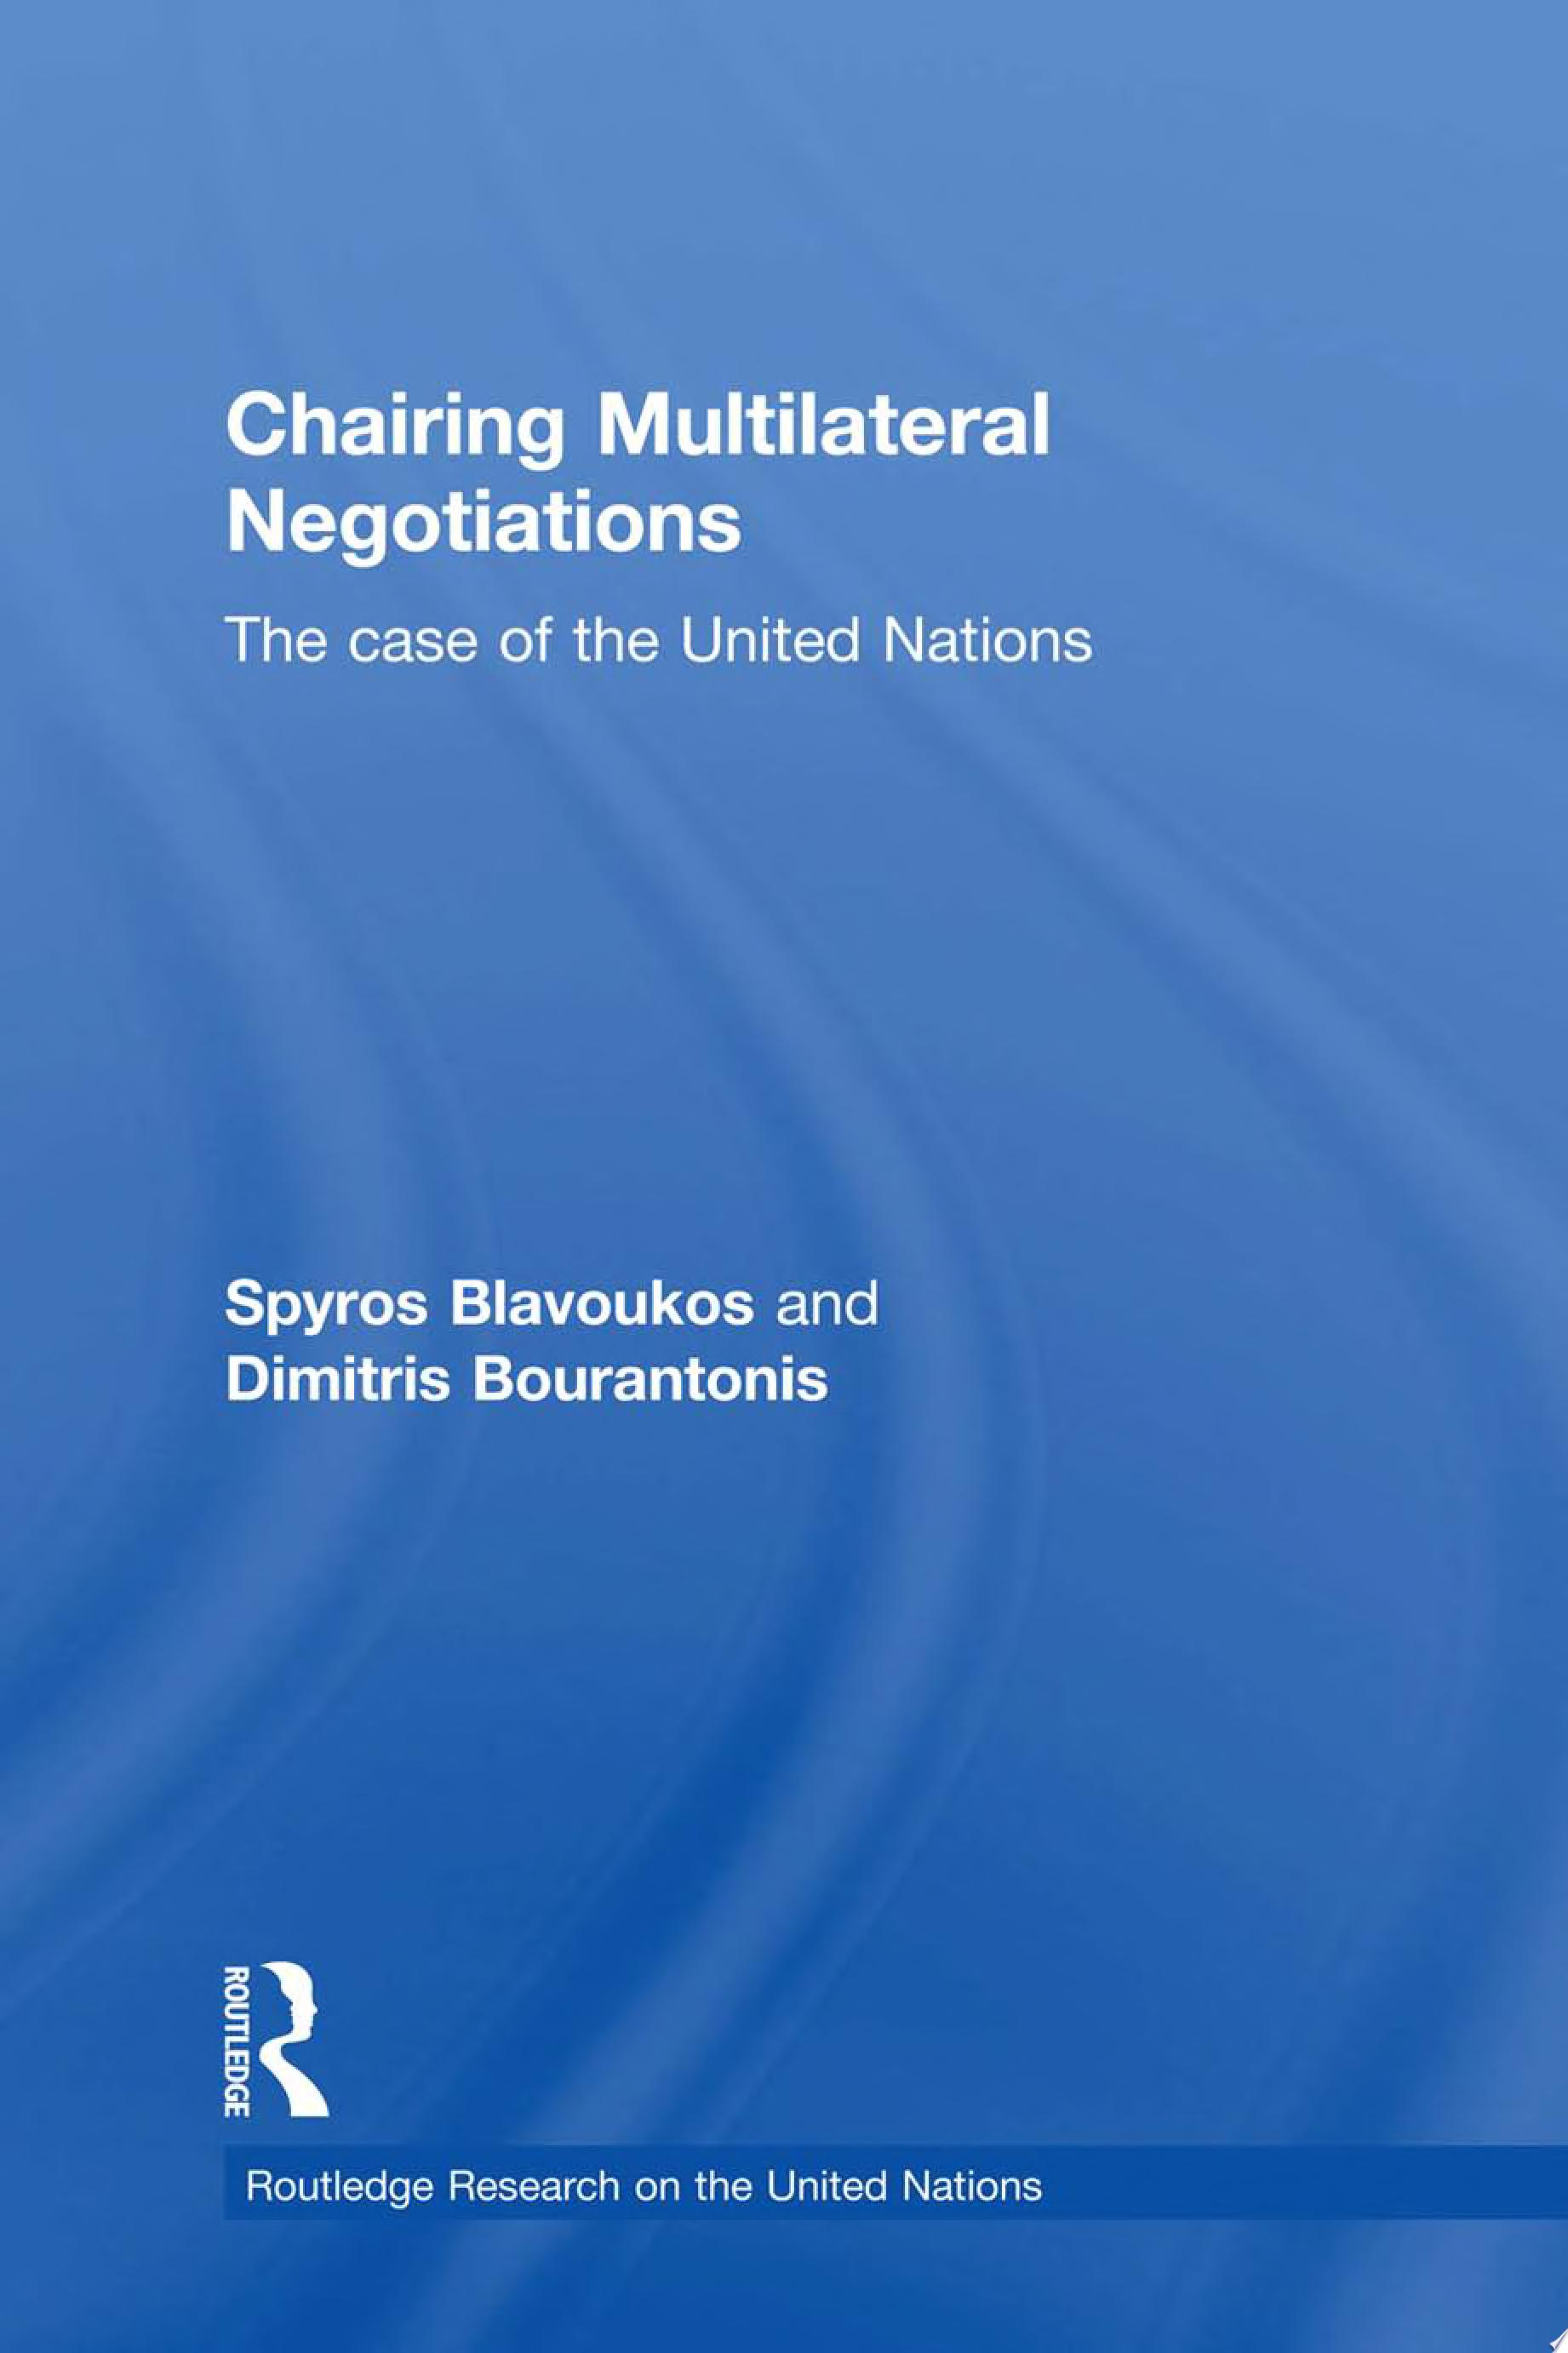 Chairing Multilateral Negotiations